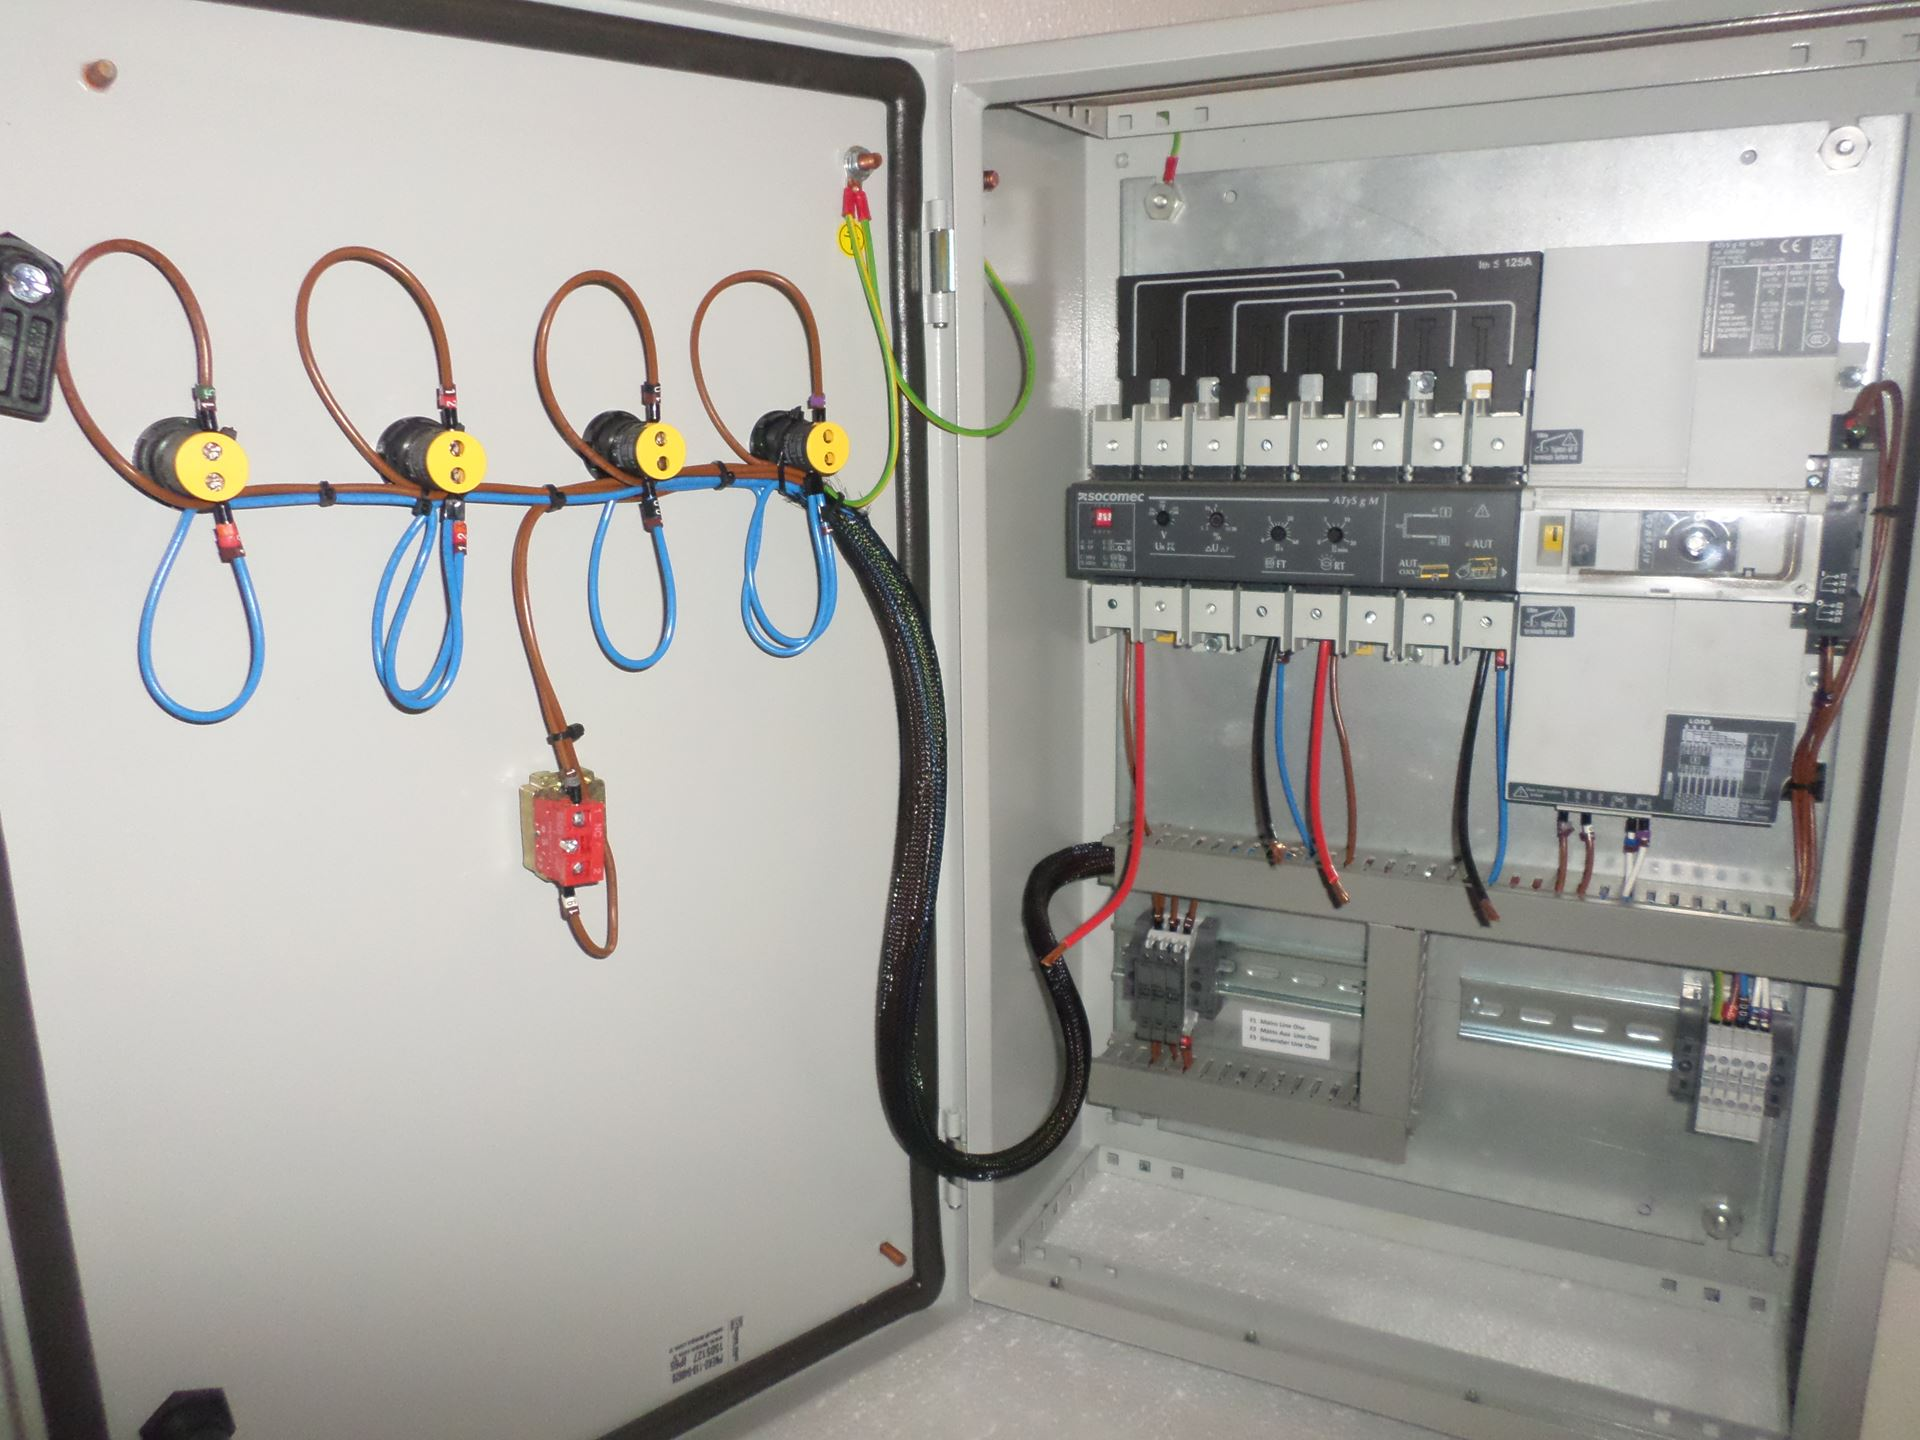 Socomec Atys Automatic Transfer Switches